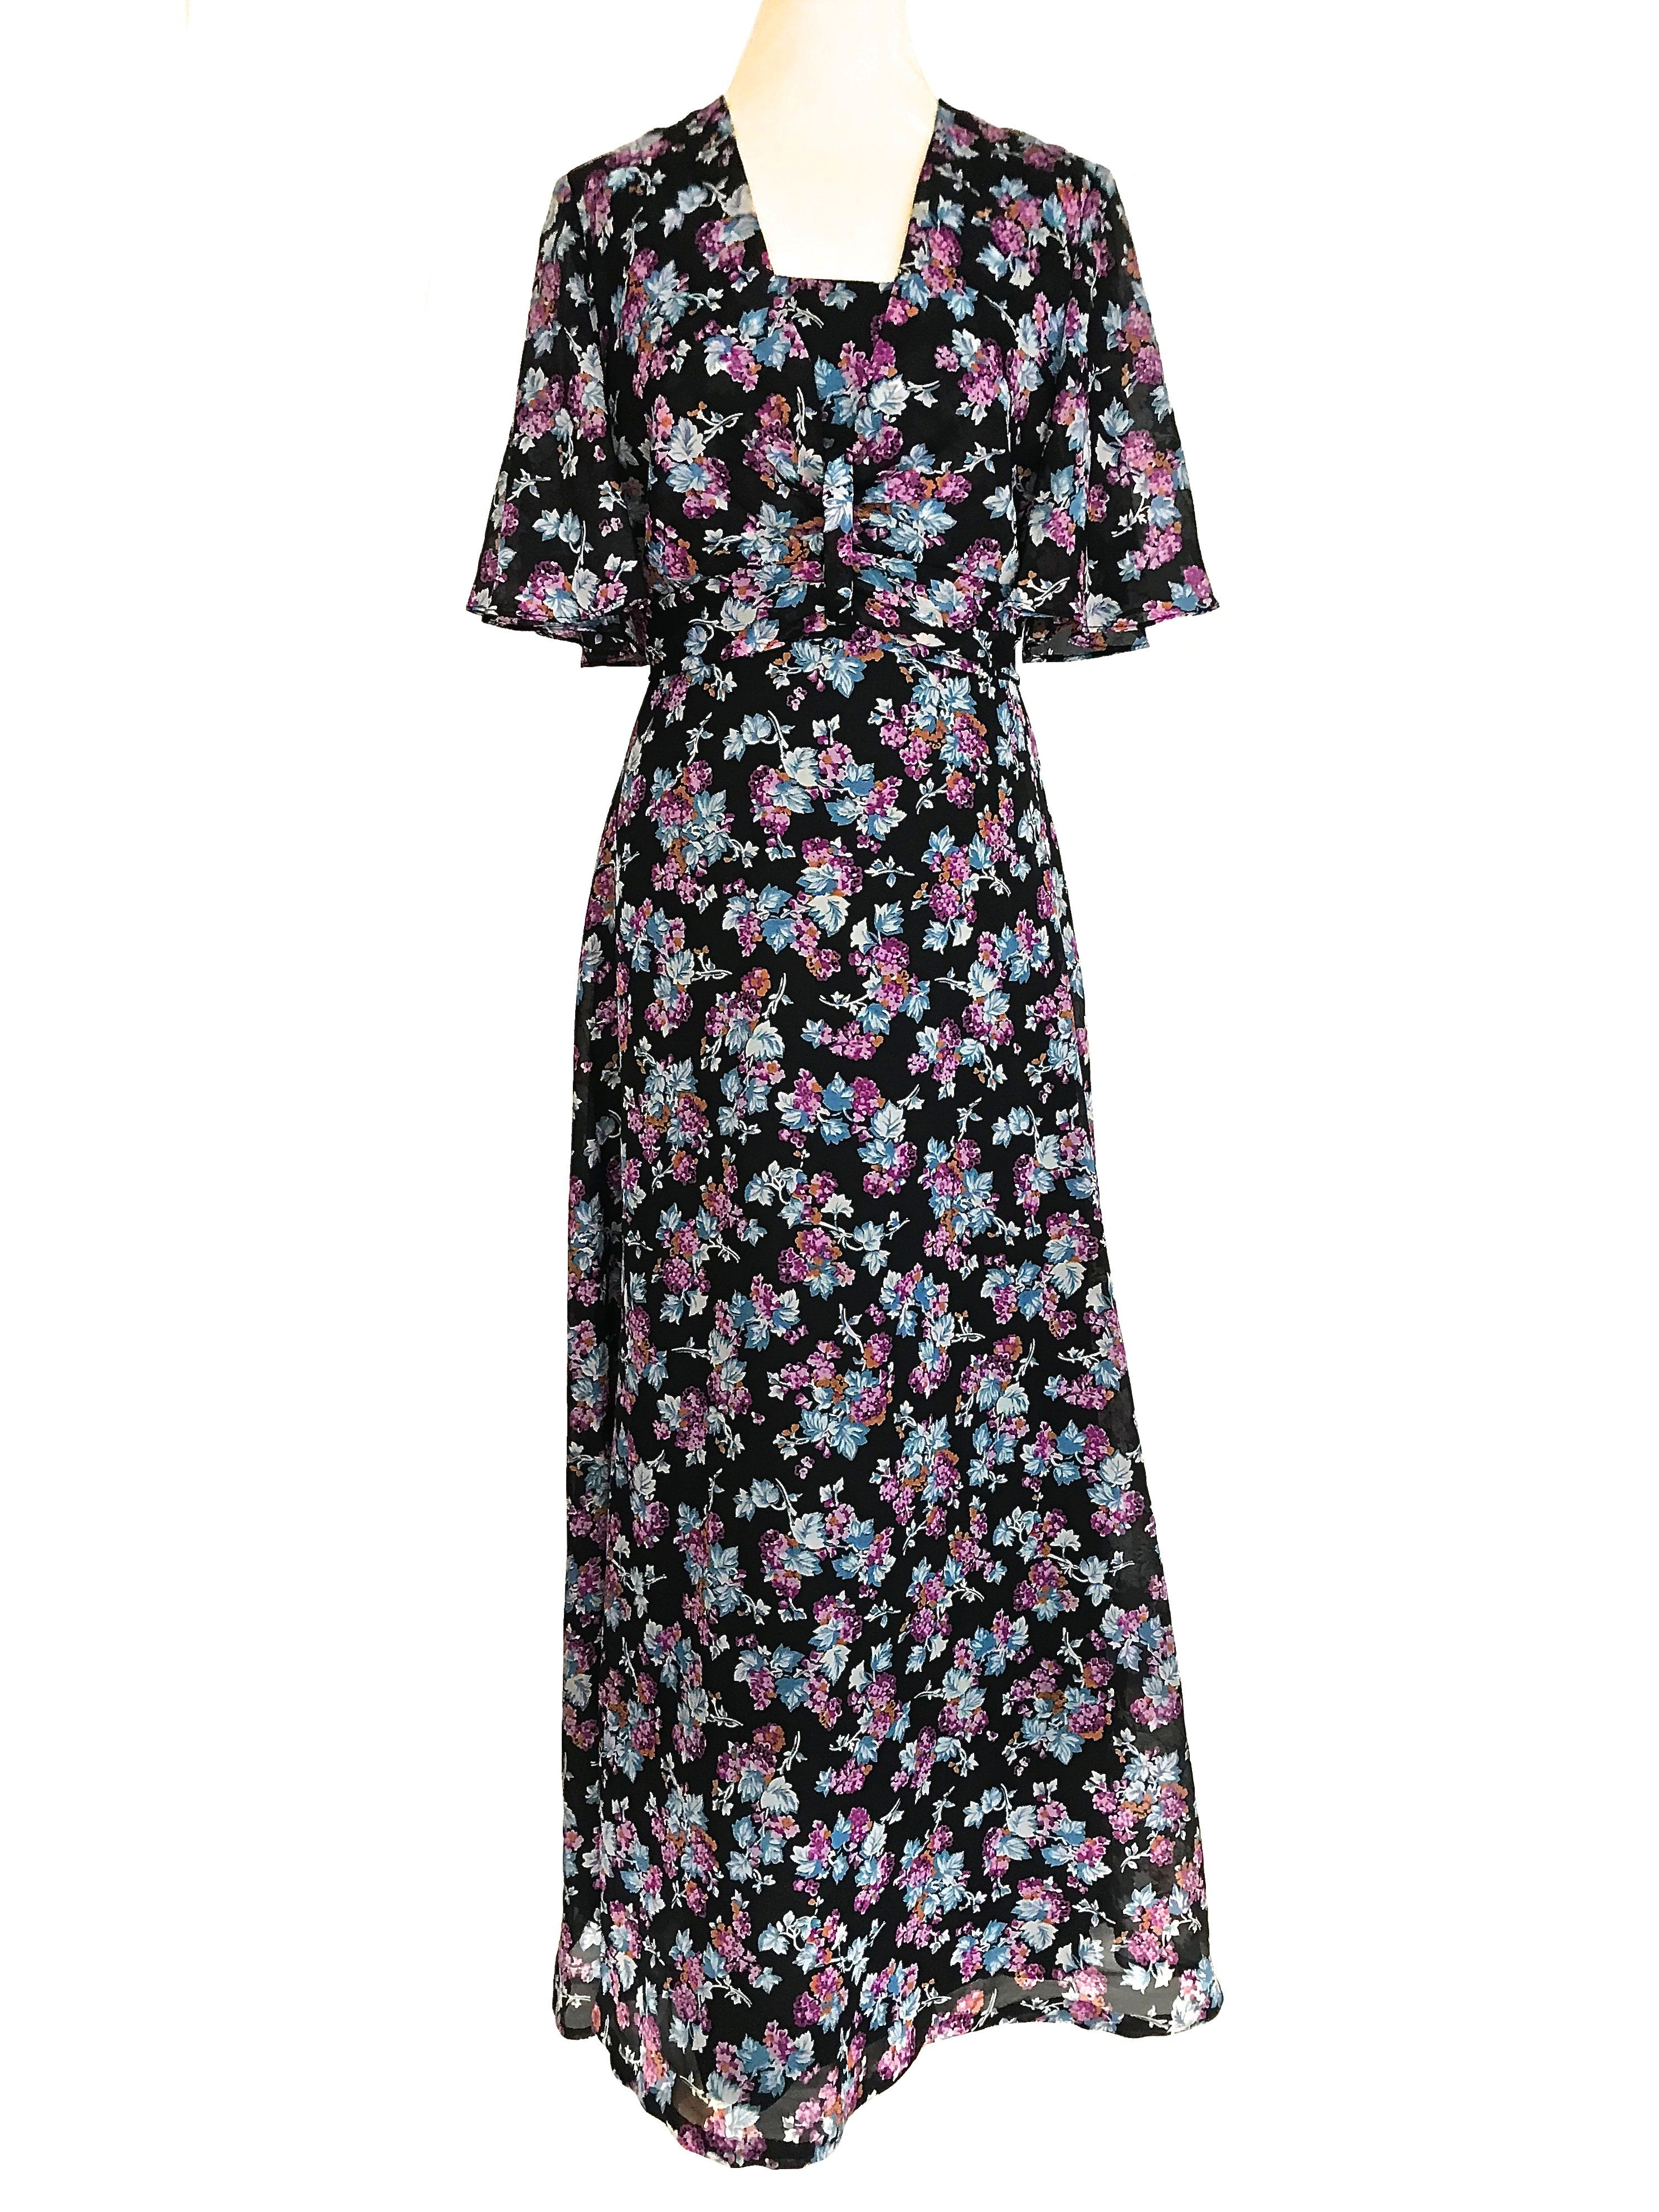 80d28166375 70s Floral Print Angel Wing Sleeve Boho Chic Maxi Evening Dress in ...